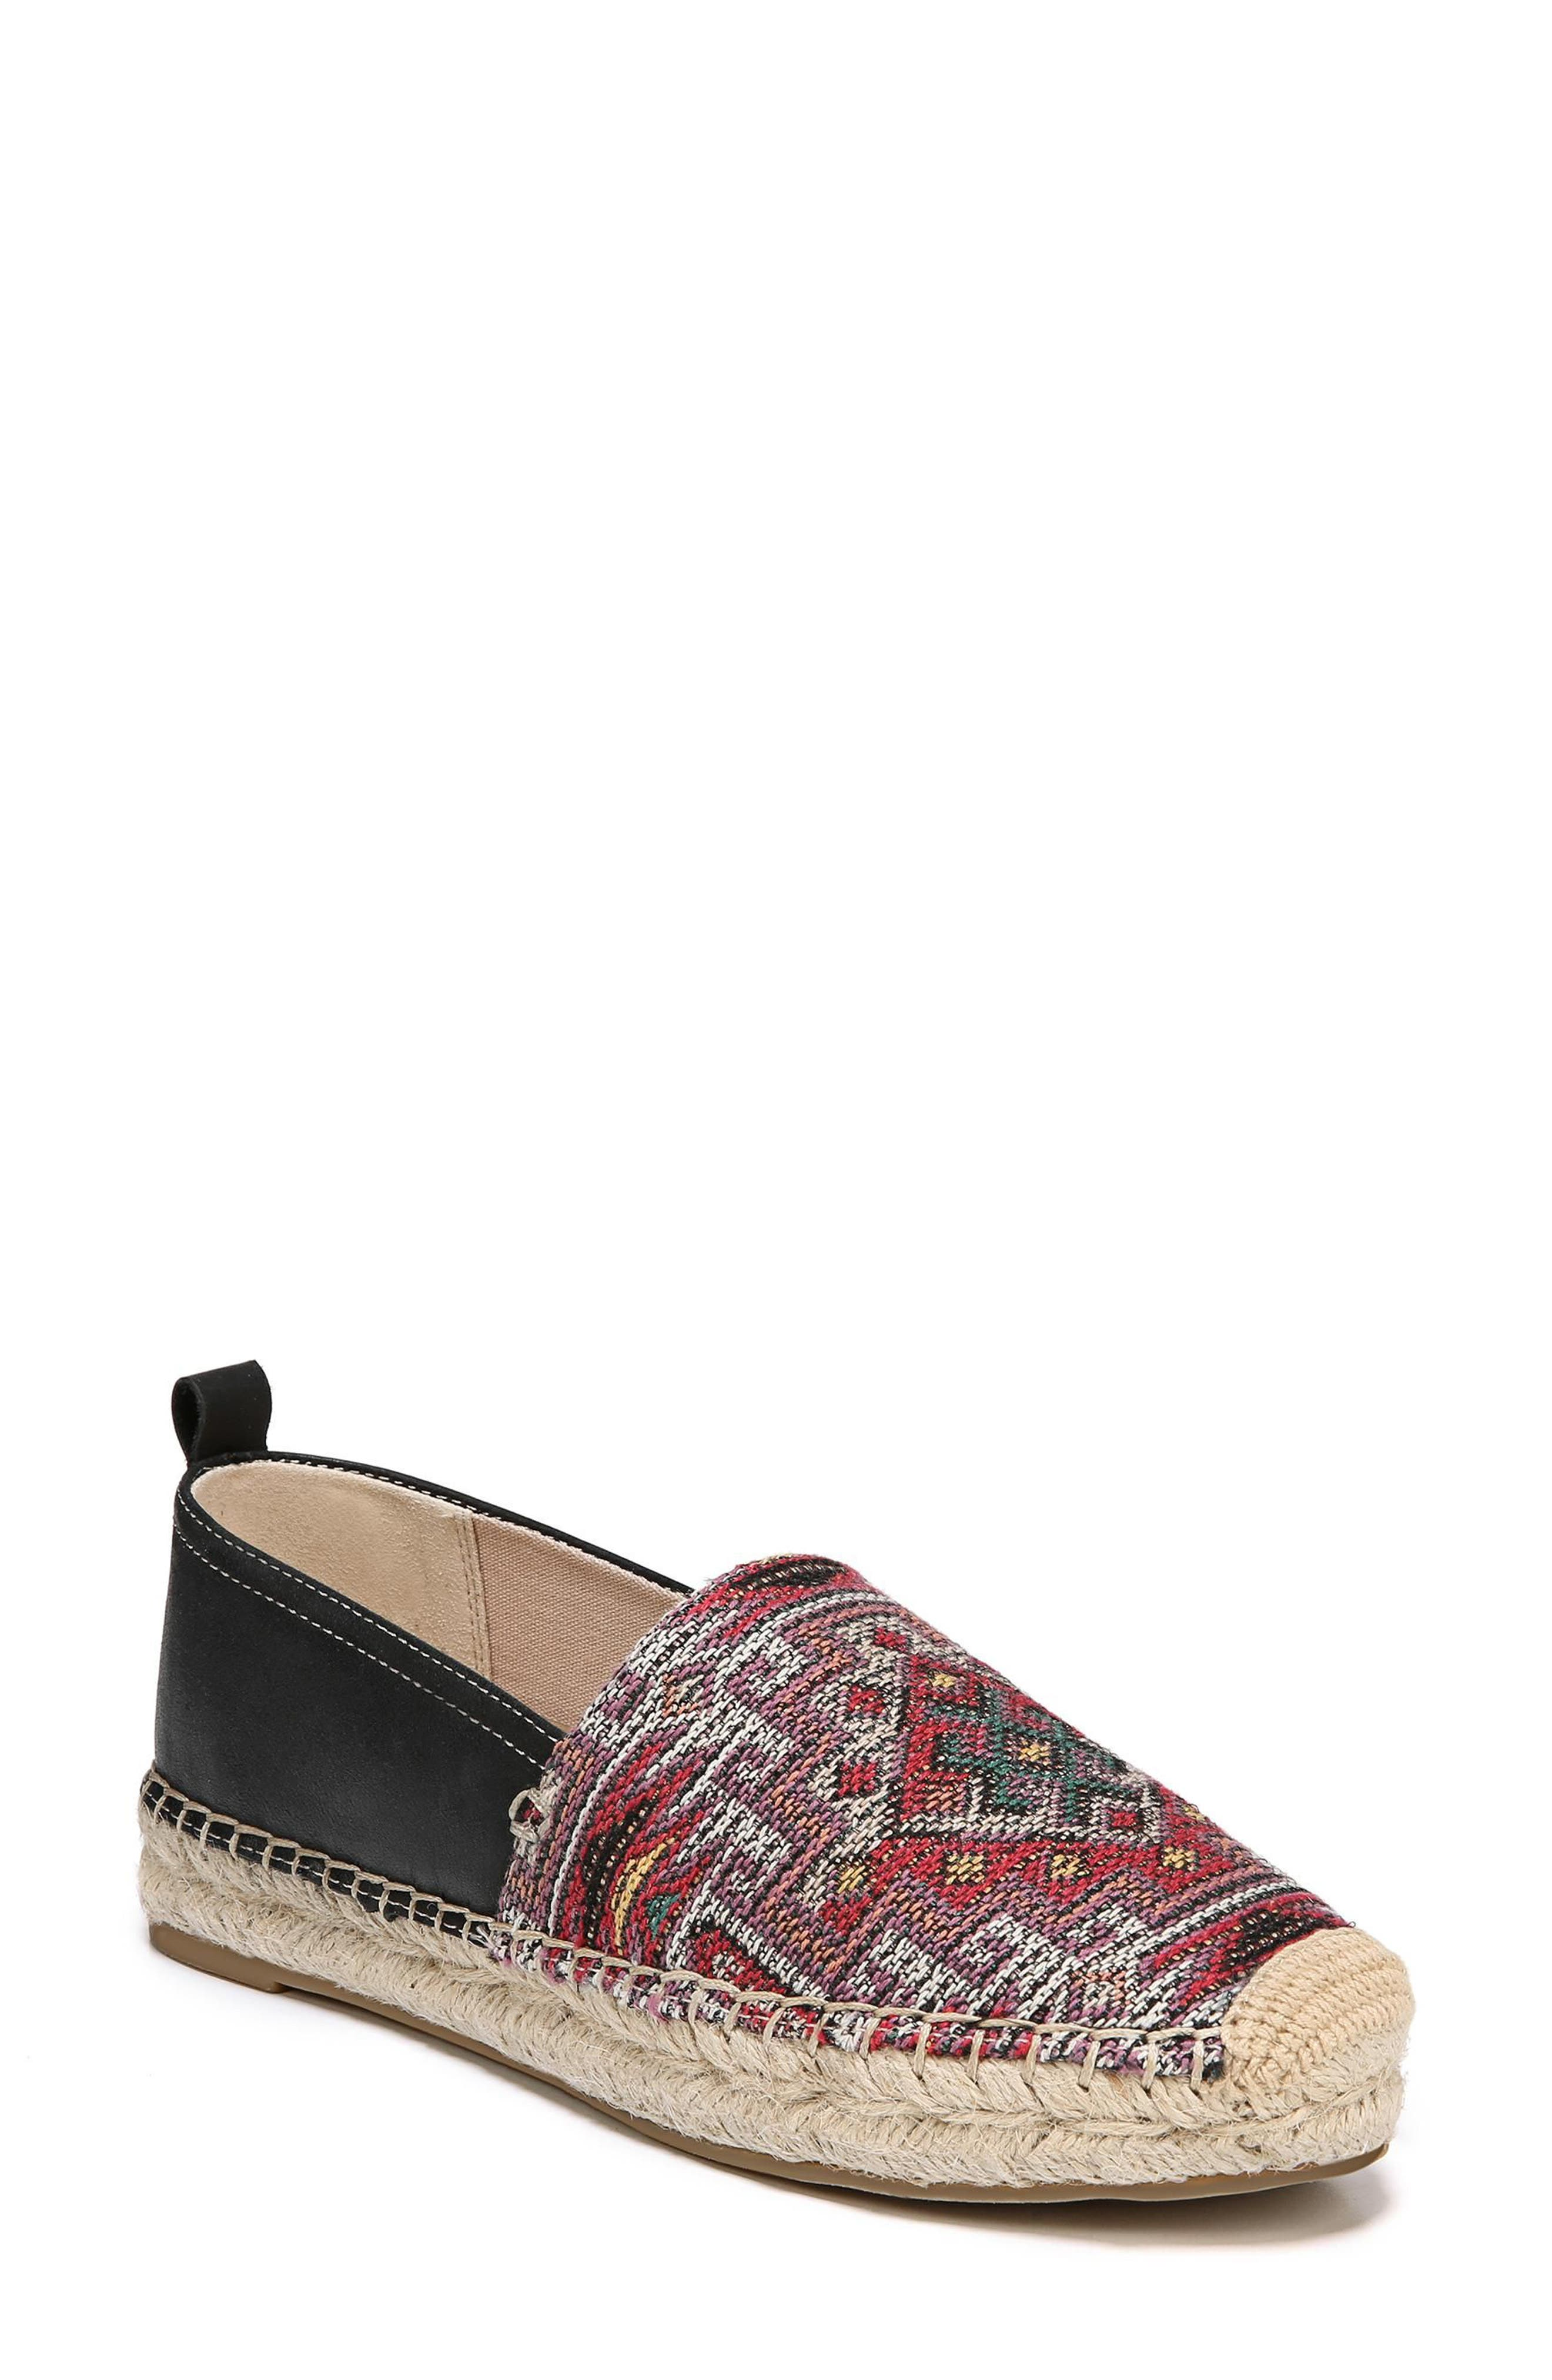 Khloe Espadrille Flat,                         Main,                         color, RED PRINT LEATHER